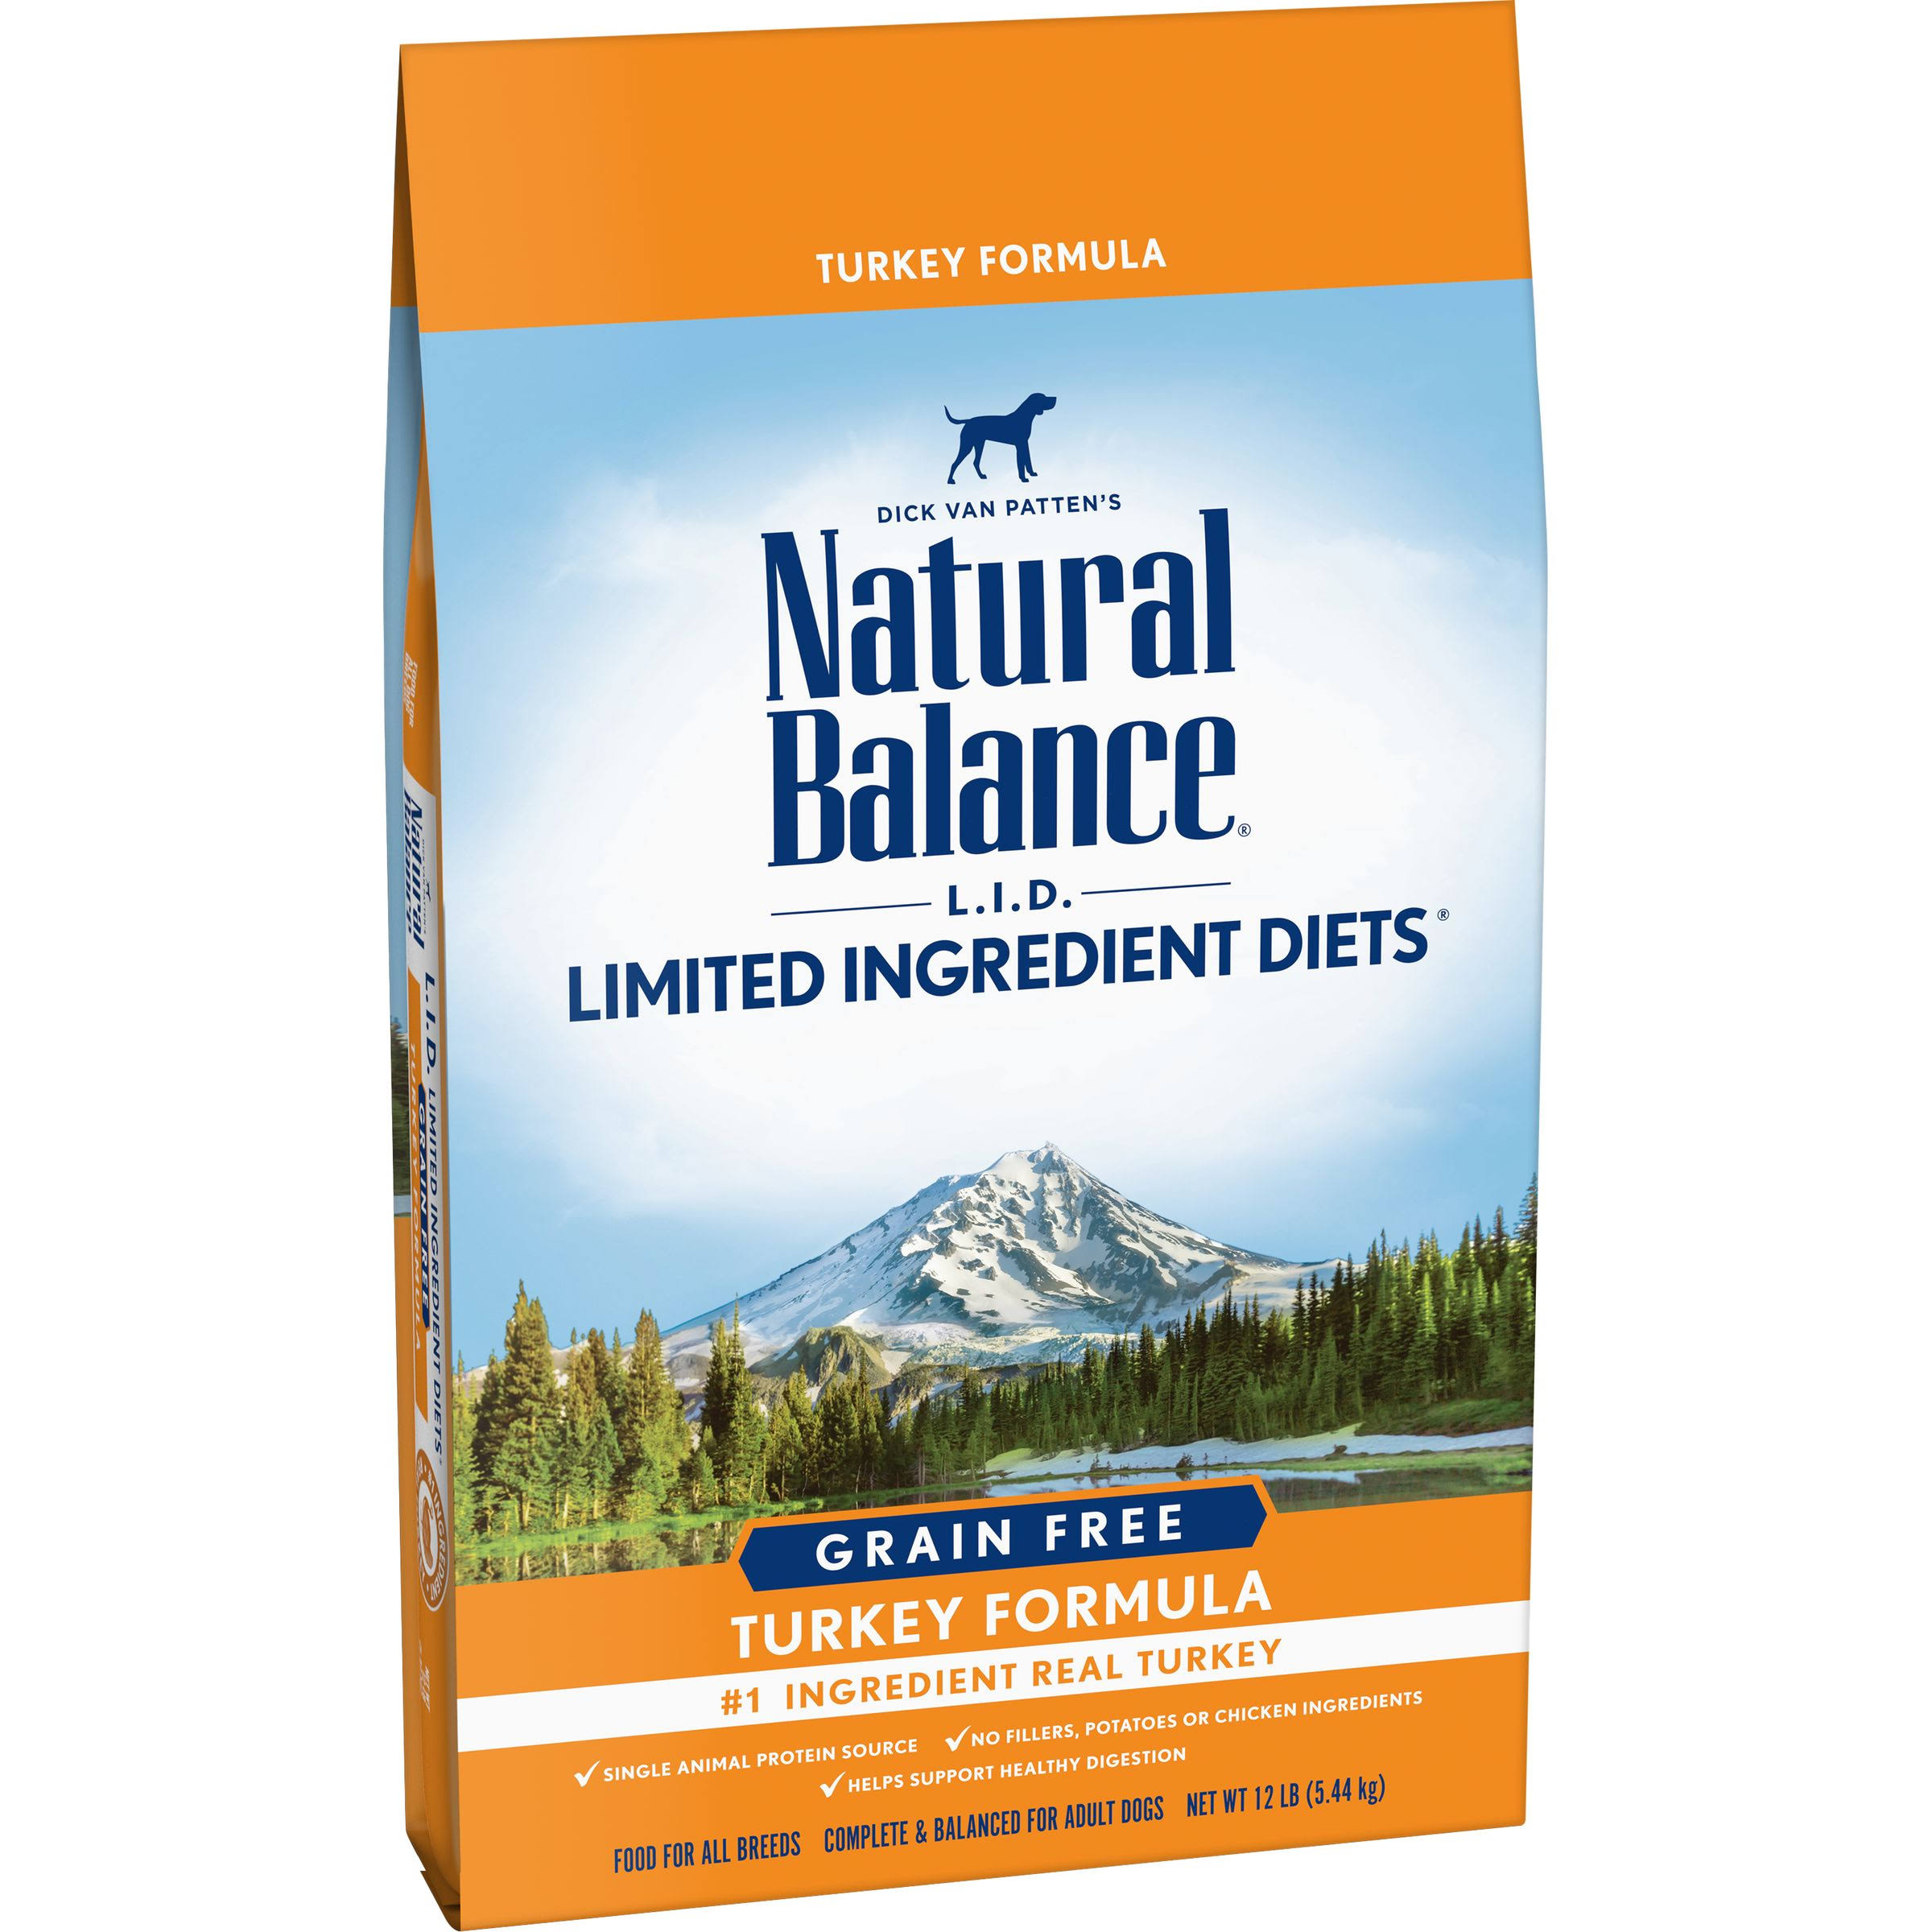 Natural Balance Limited Ingredient Diets Turkey Formula Dry Dog Food - 12lb